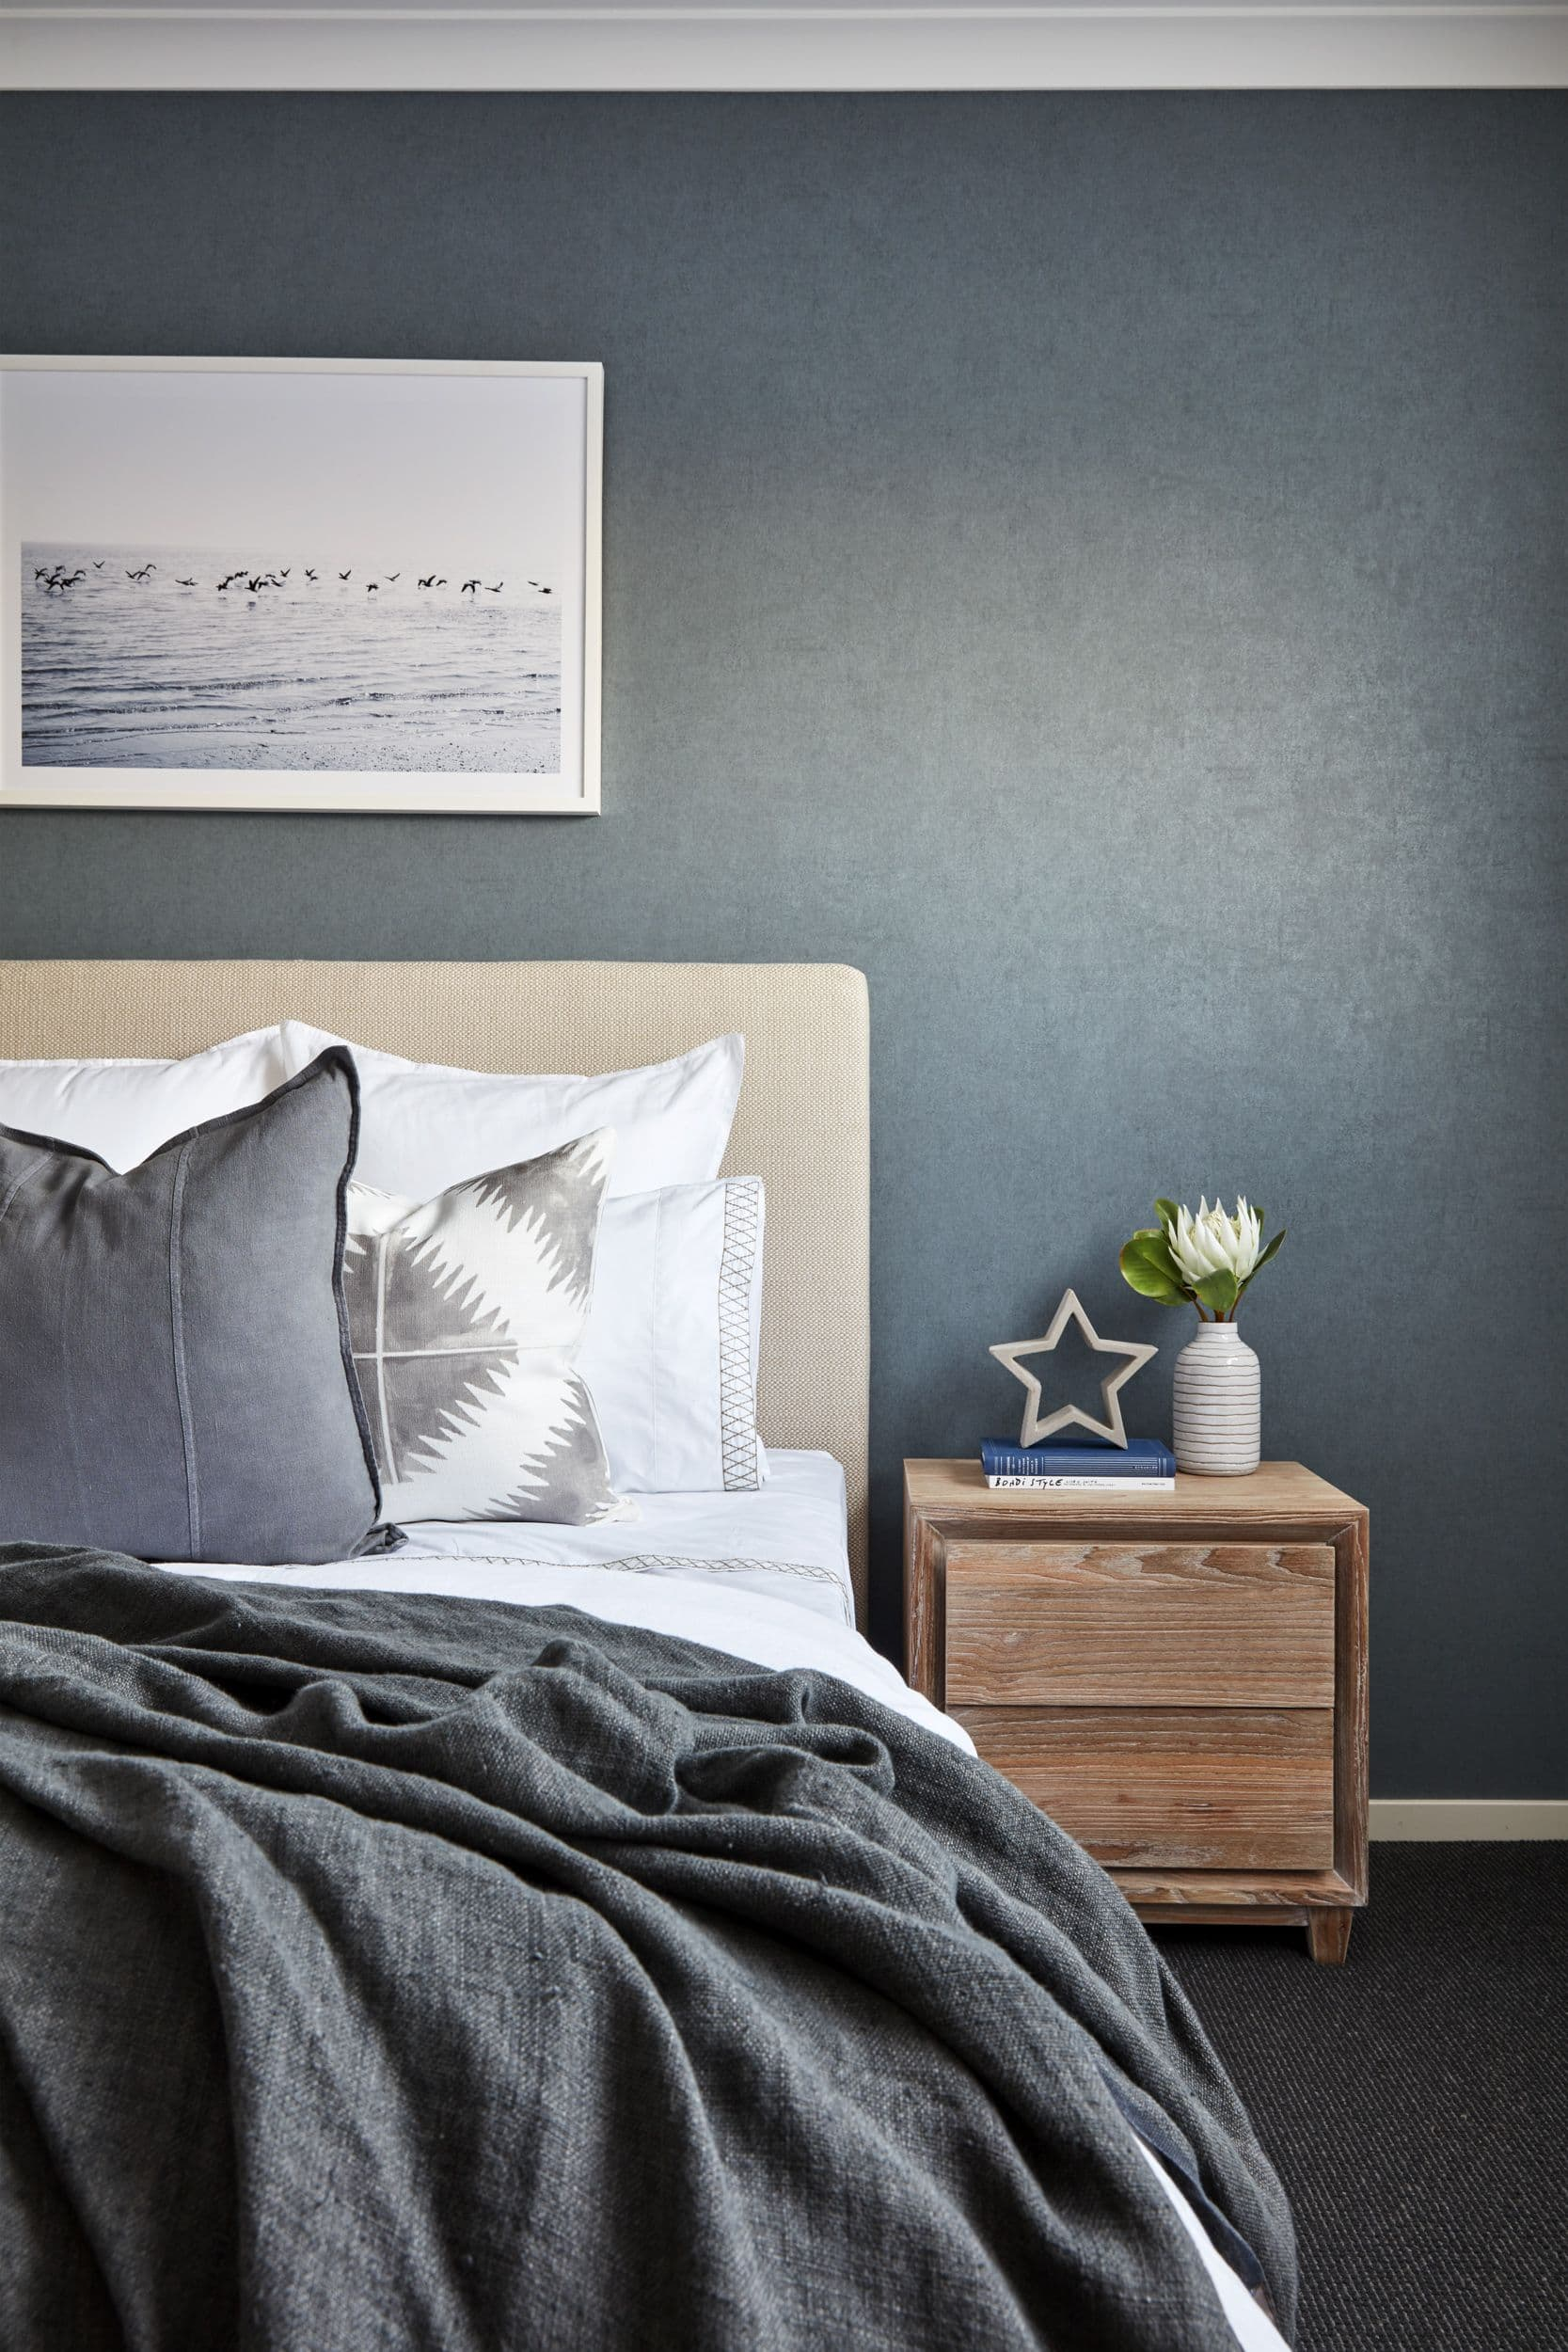 dark coastal bedroom with grey suede paint effect and coastal artwork with white frame